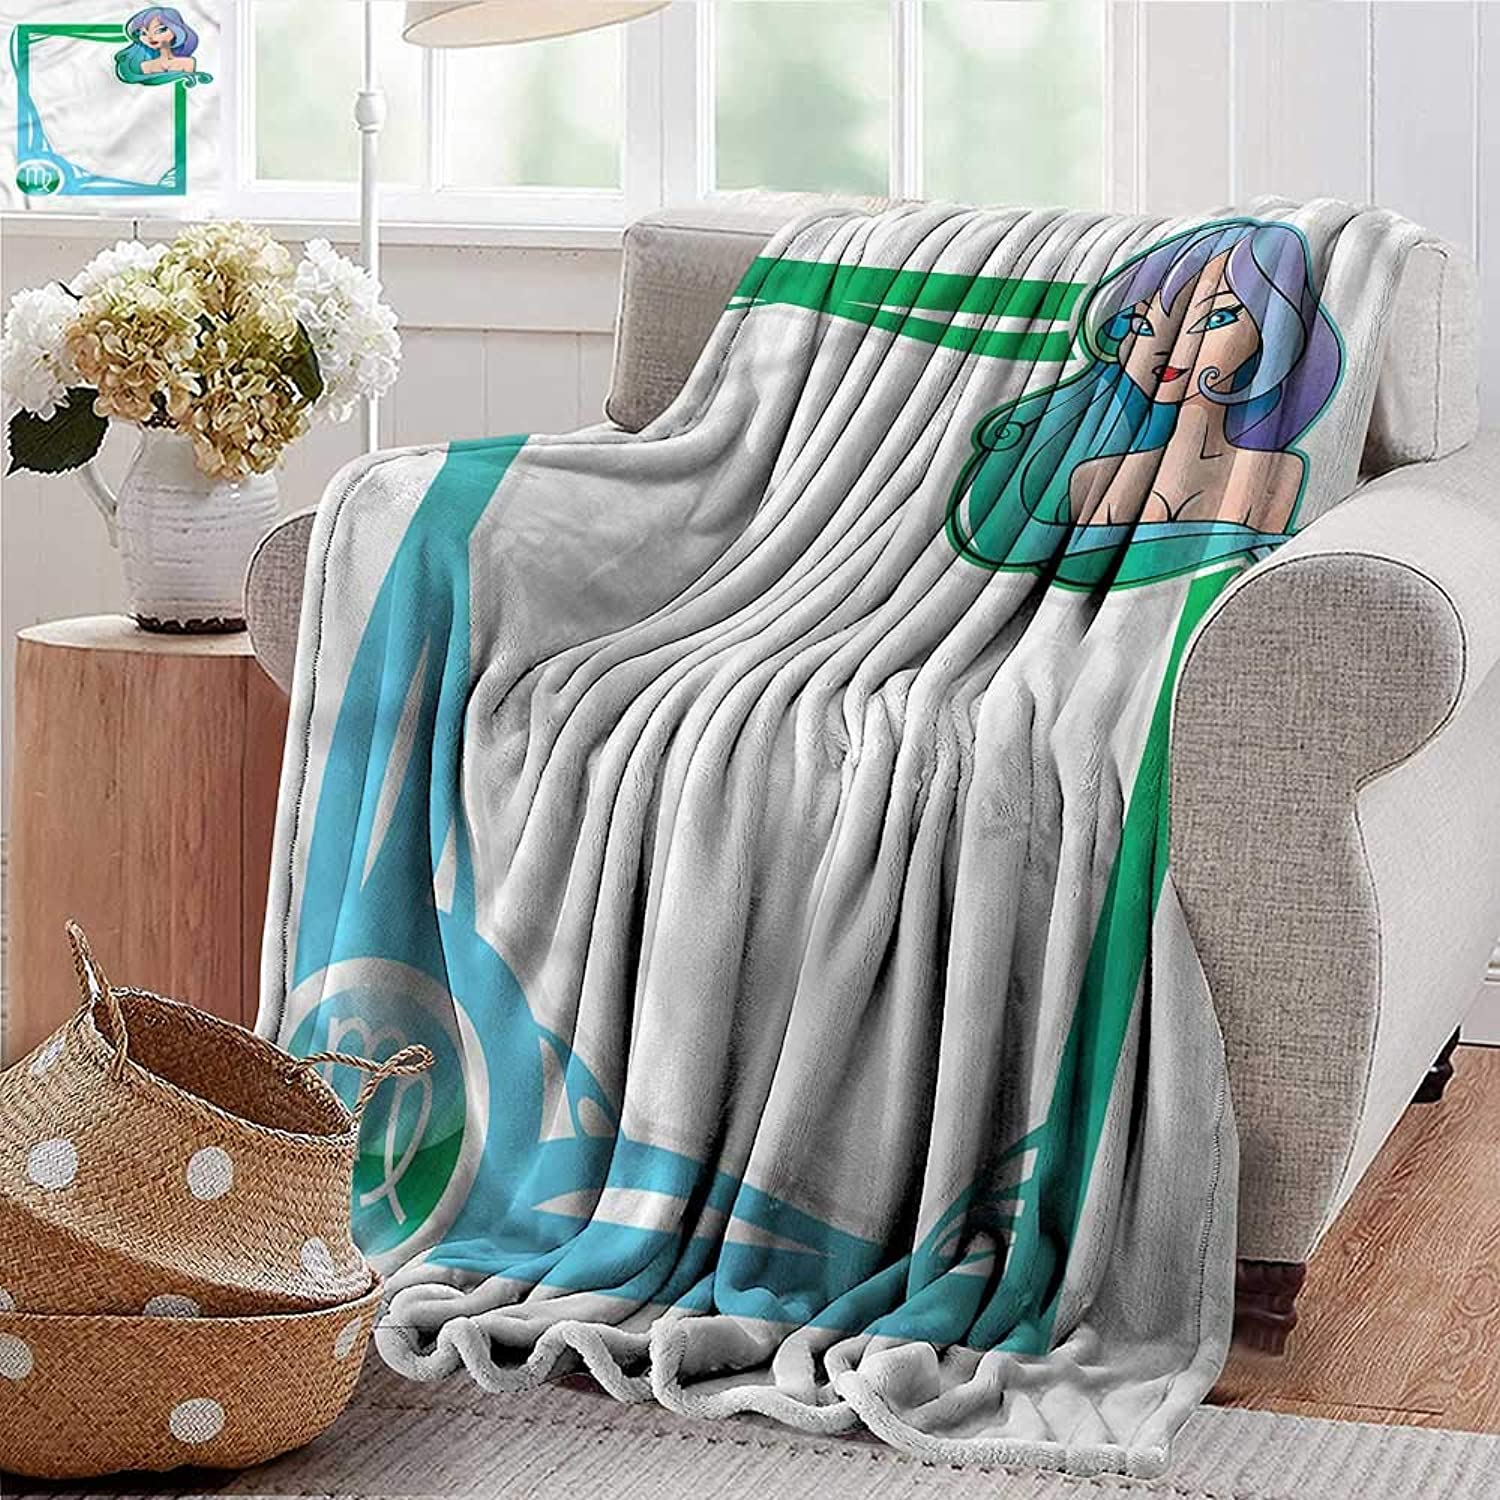 Xaviera Doherty Soft Cozy Throw Blanket Zodiac Virgo,Cartoon Frame Girl for Bed & Couch Sofa Easy Care 70 x90